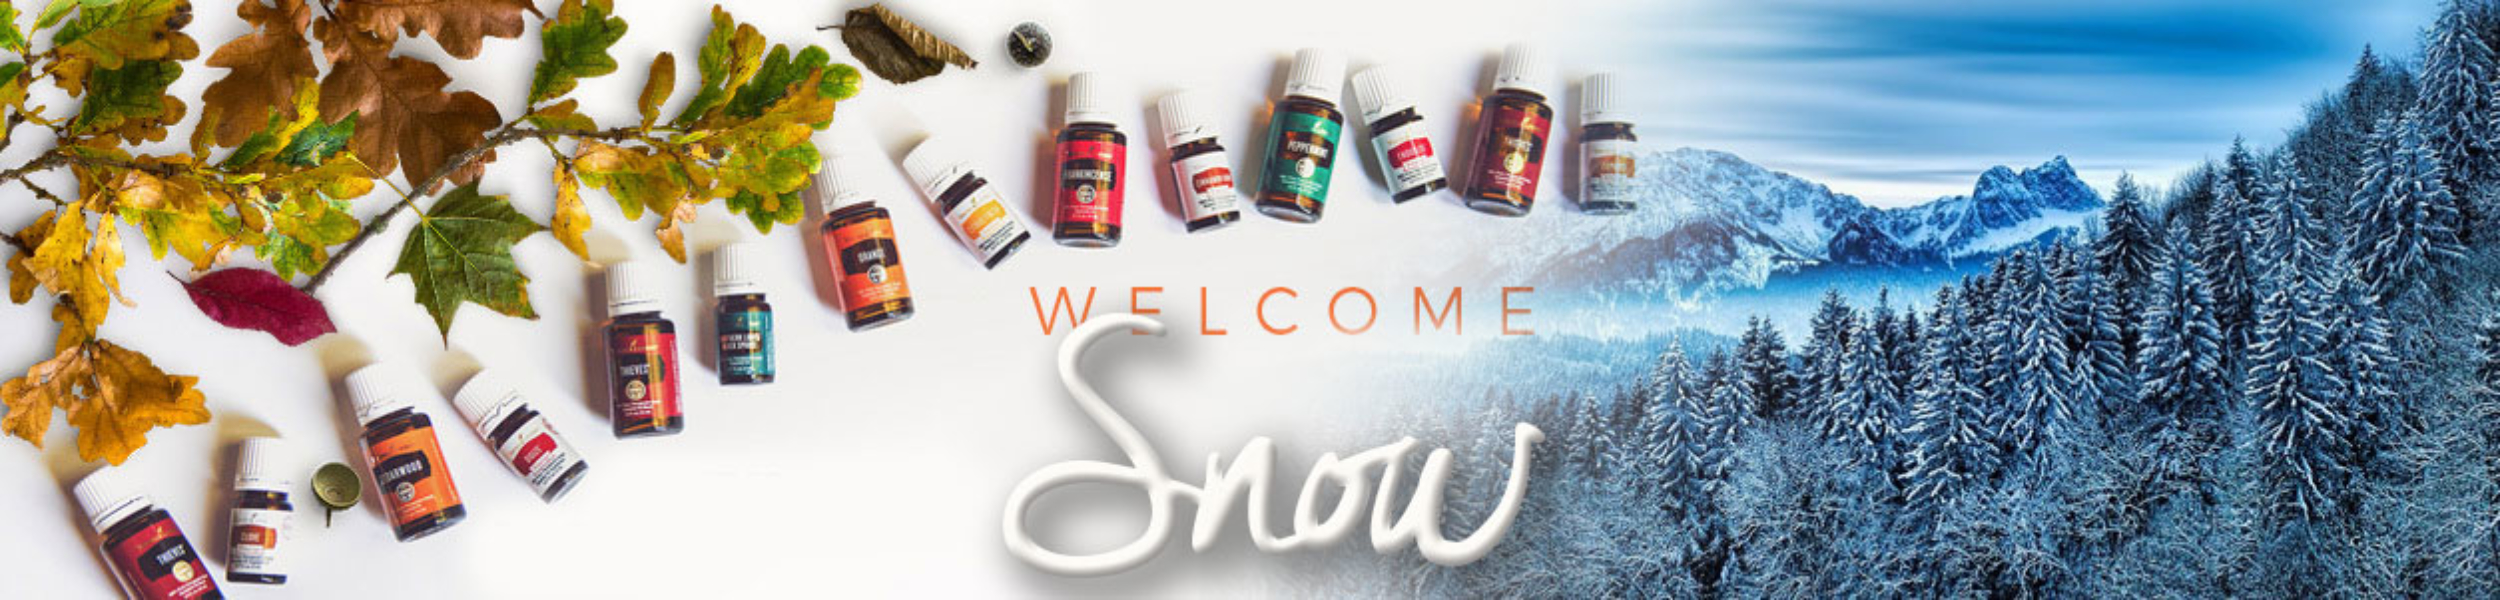 essential-oils-for-snow-marketing